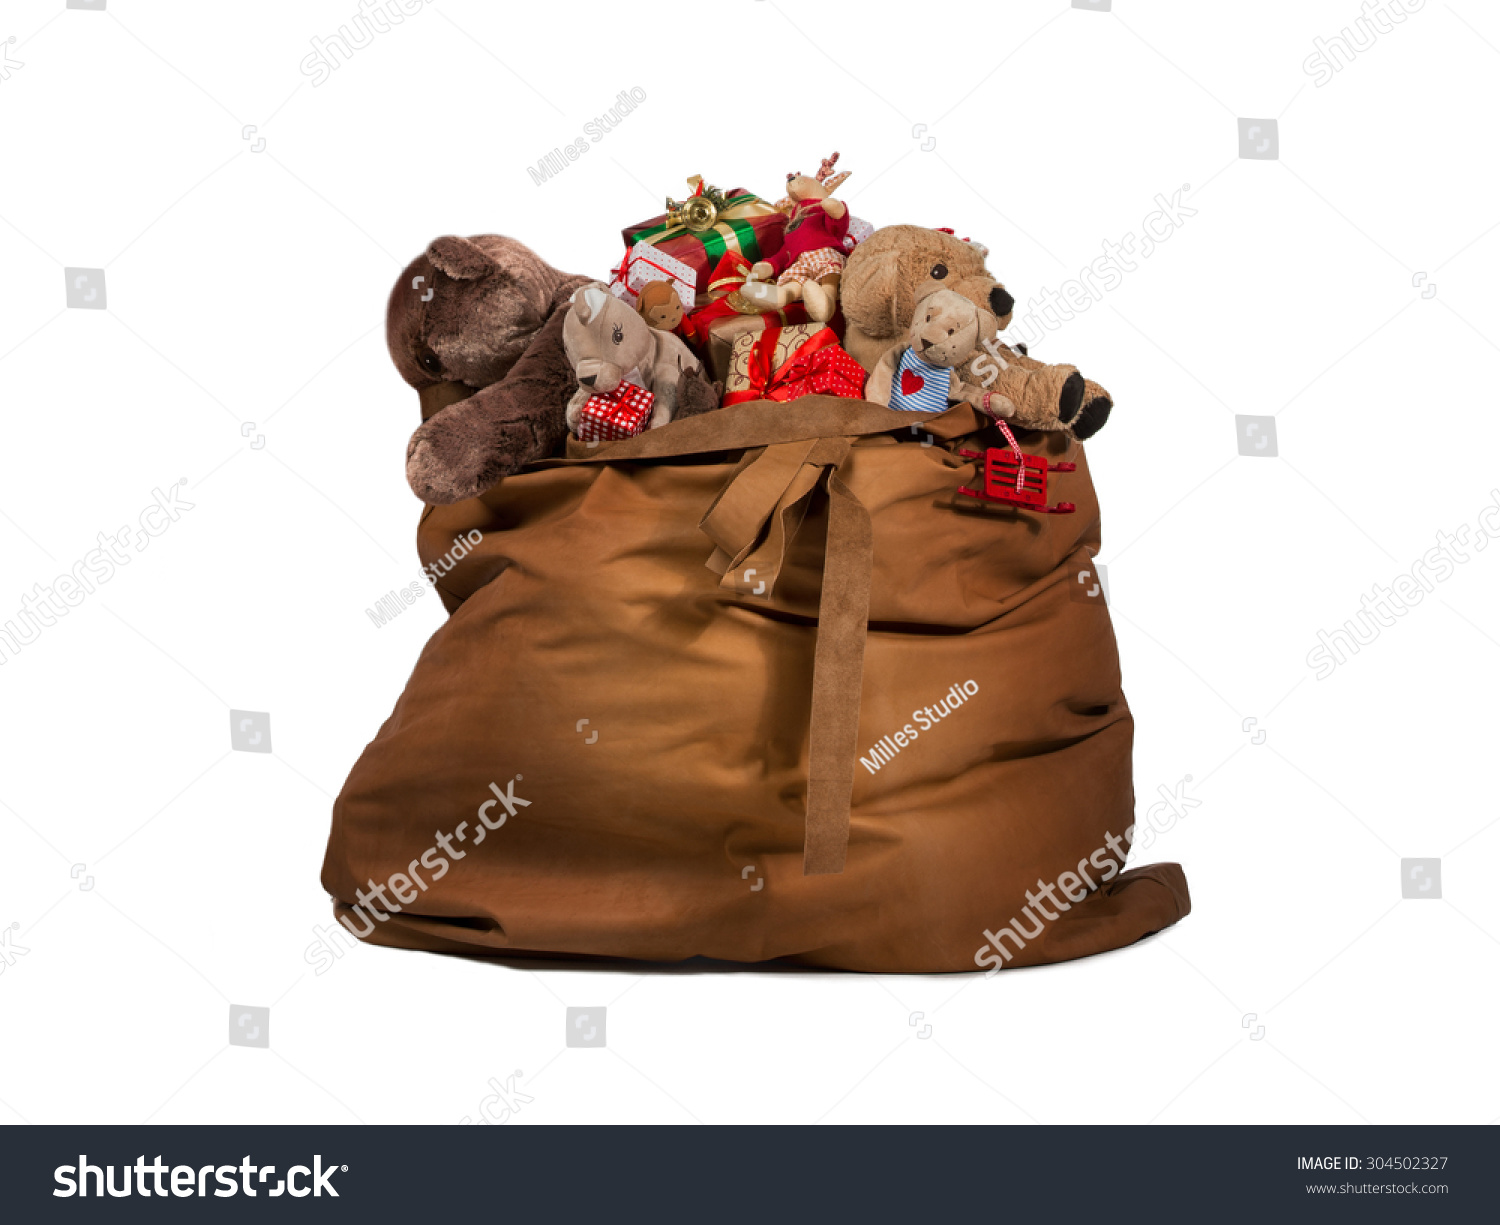 Gift Bag Toys : Santa claus gift bag full toys stock photo